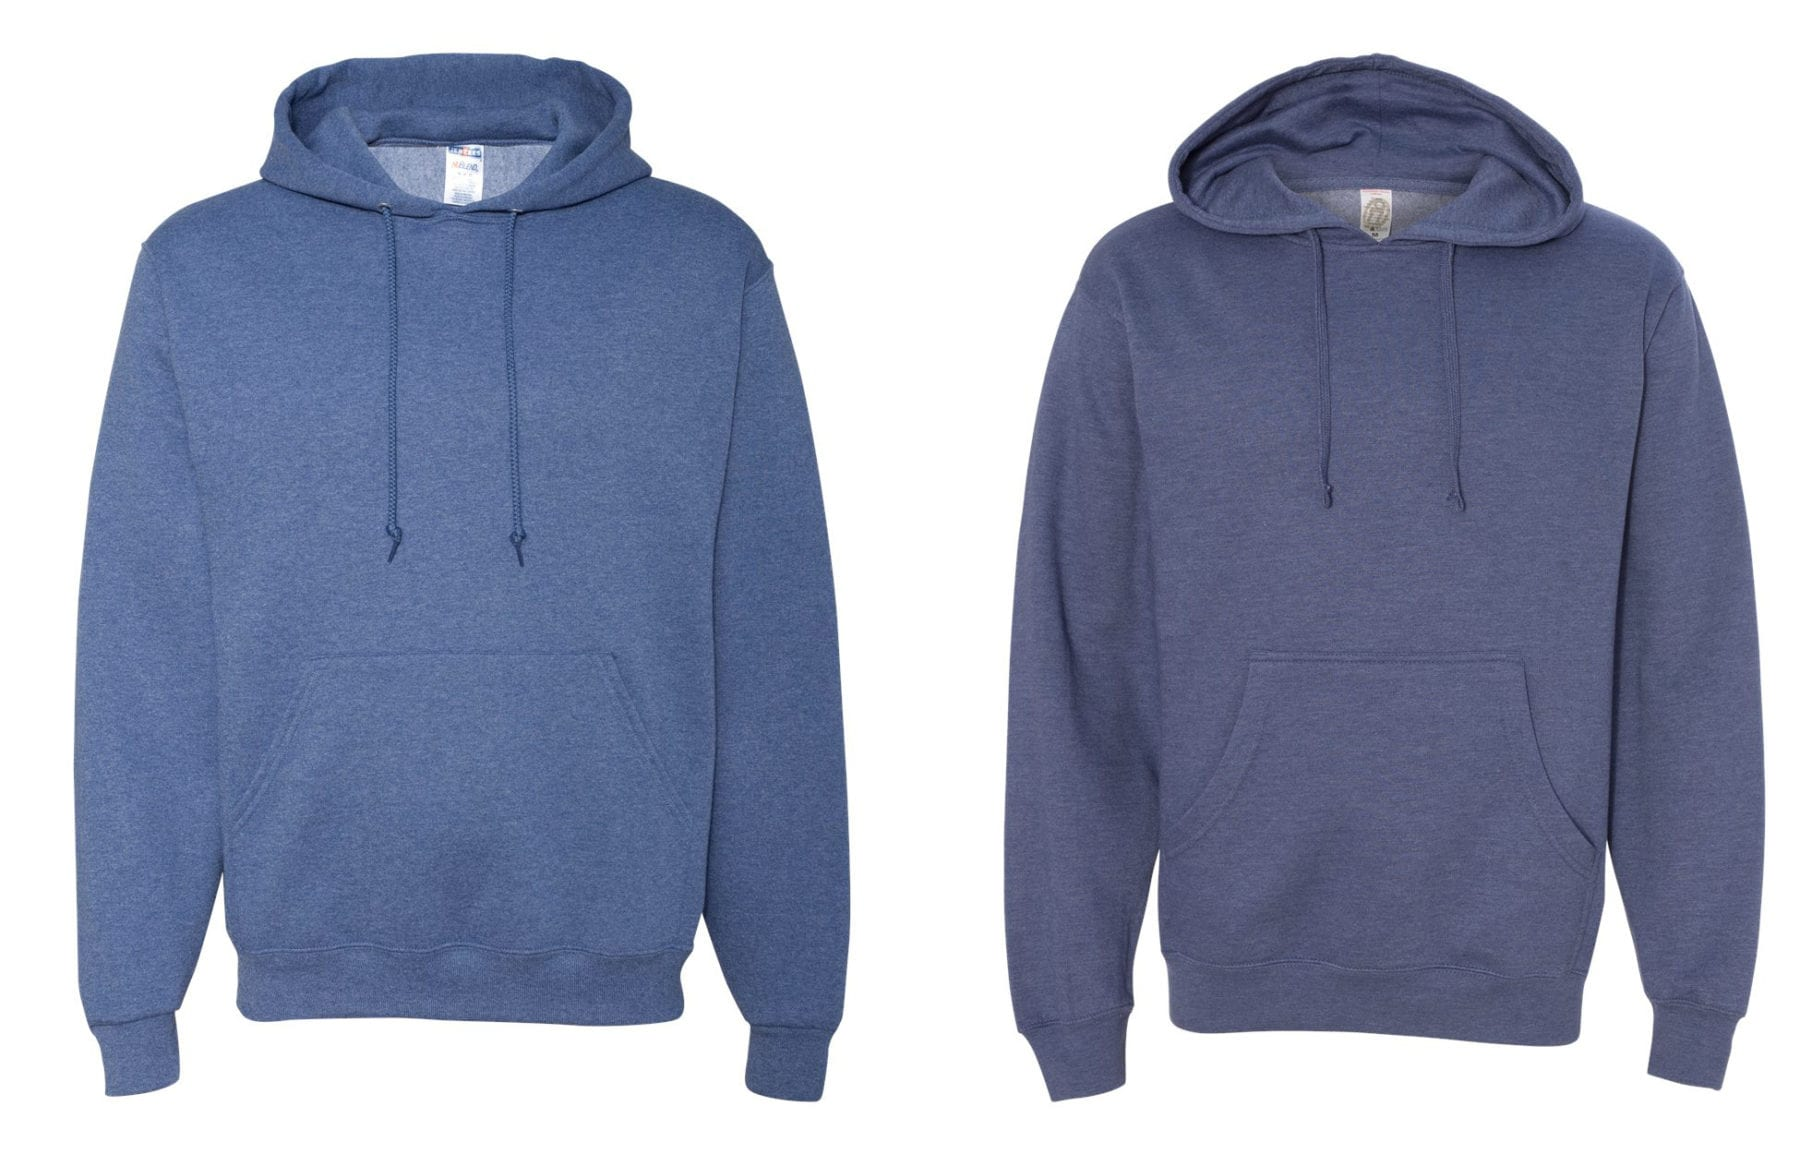 The Best 5 Blank Hoodies For Printing Quality Blank